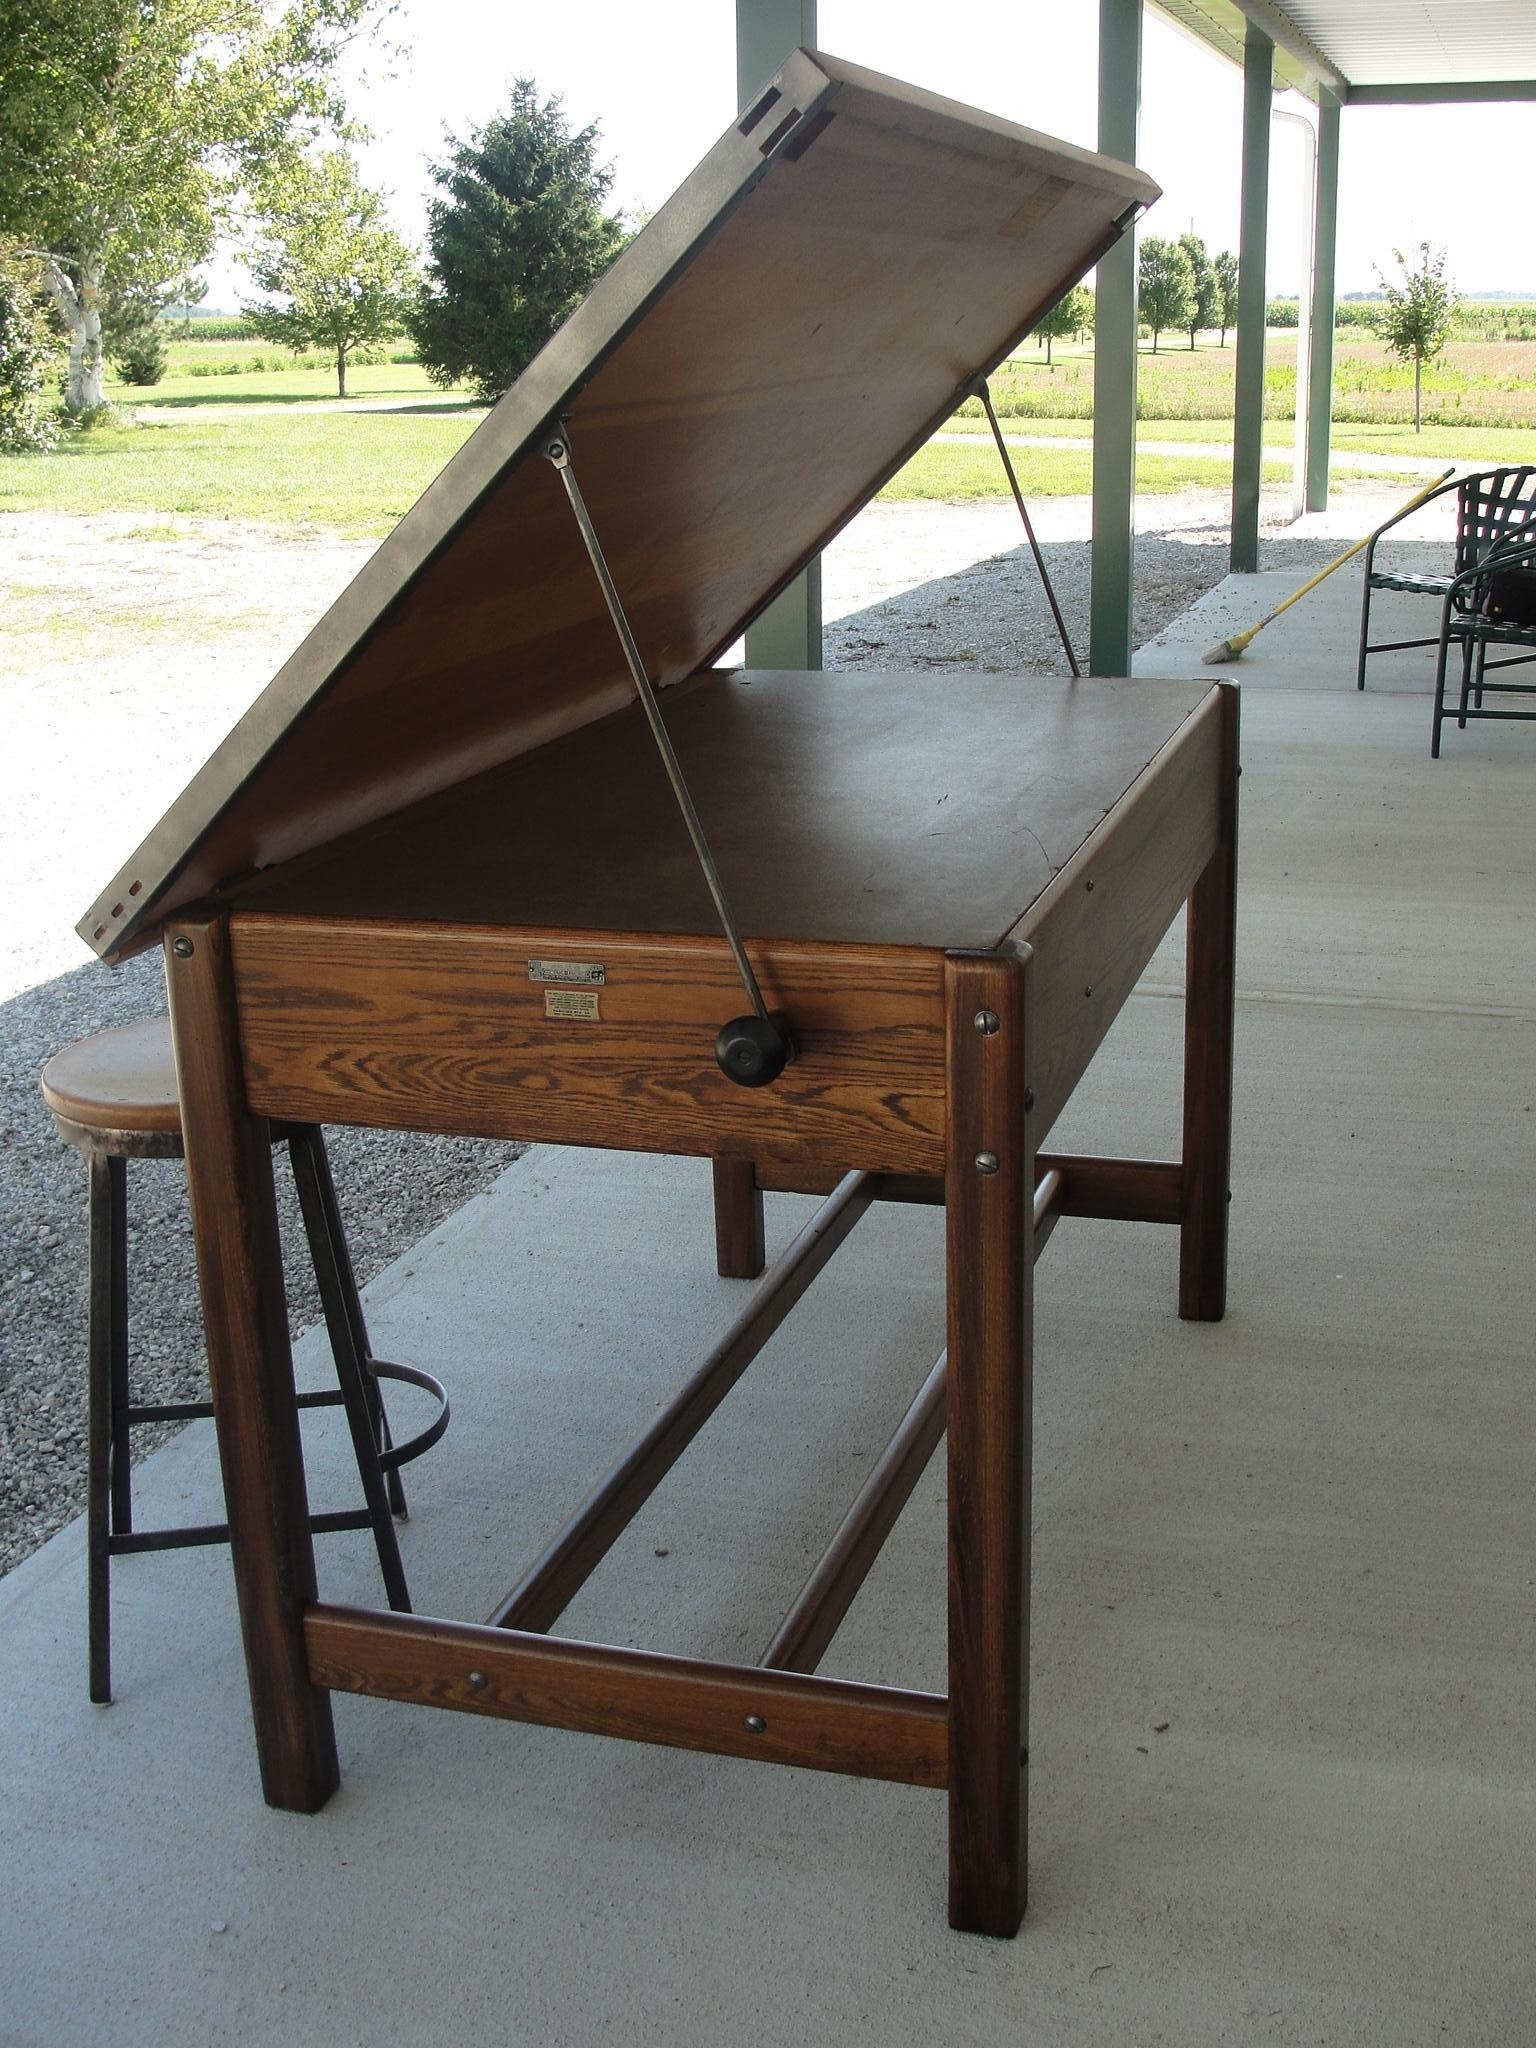 Vintage Industrial Hamilton Drafting Table Kitchen Island from